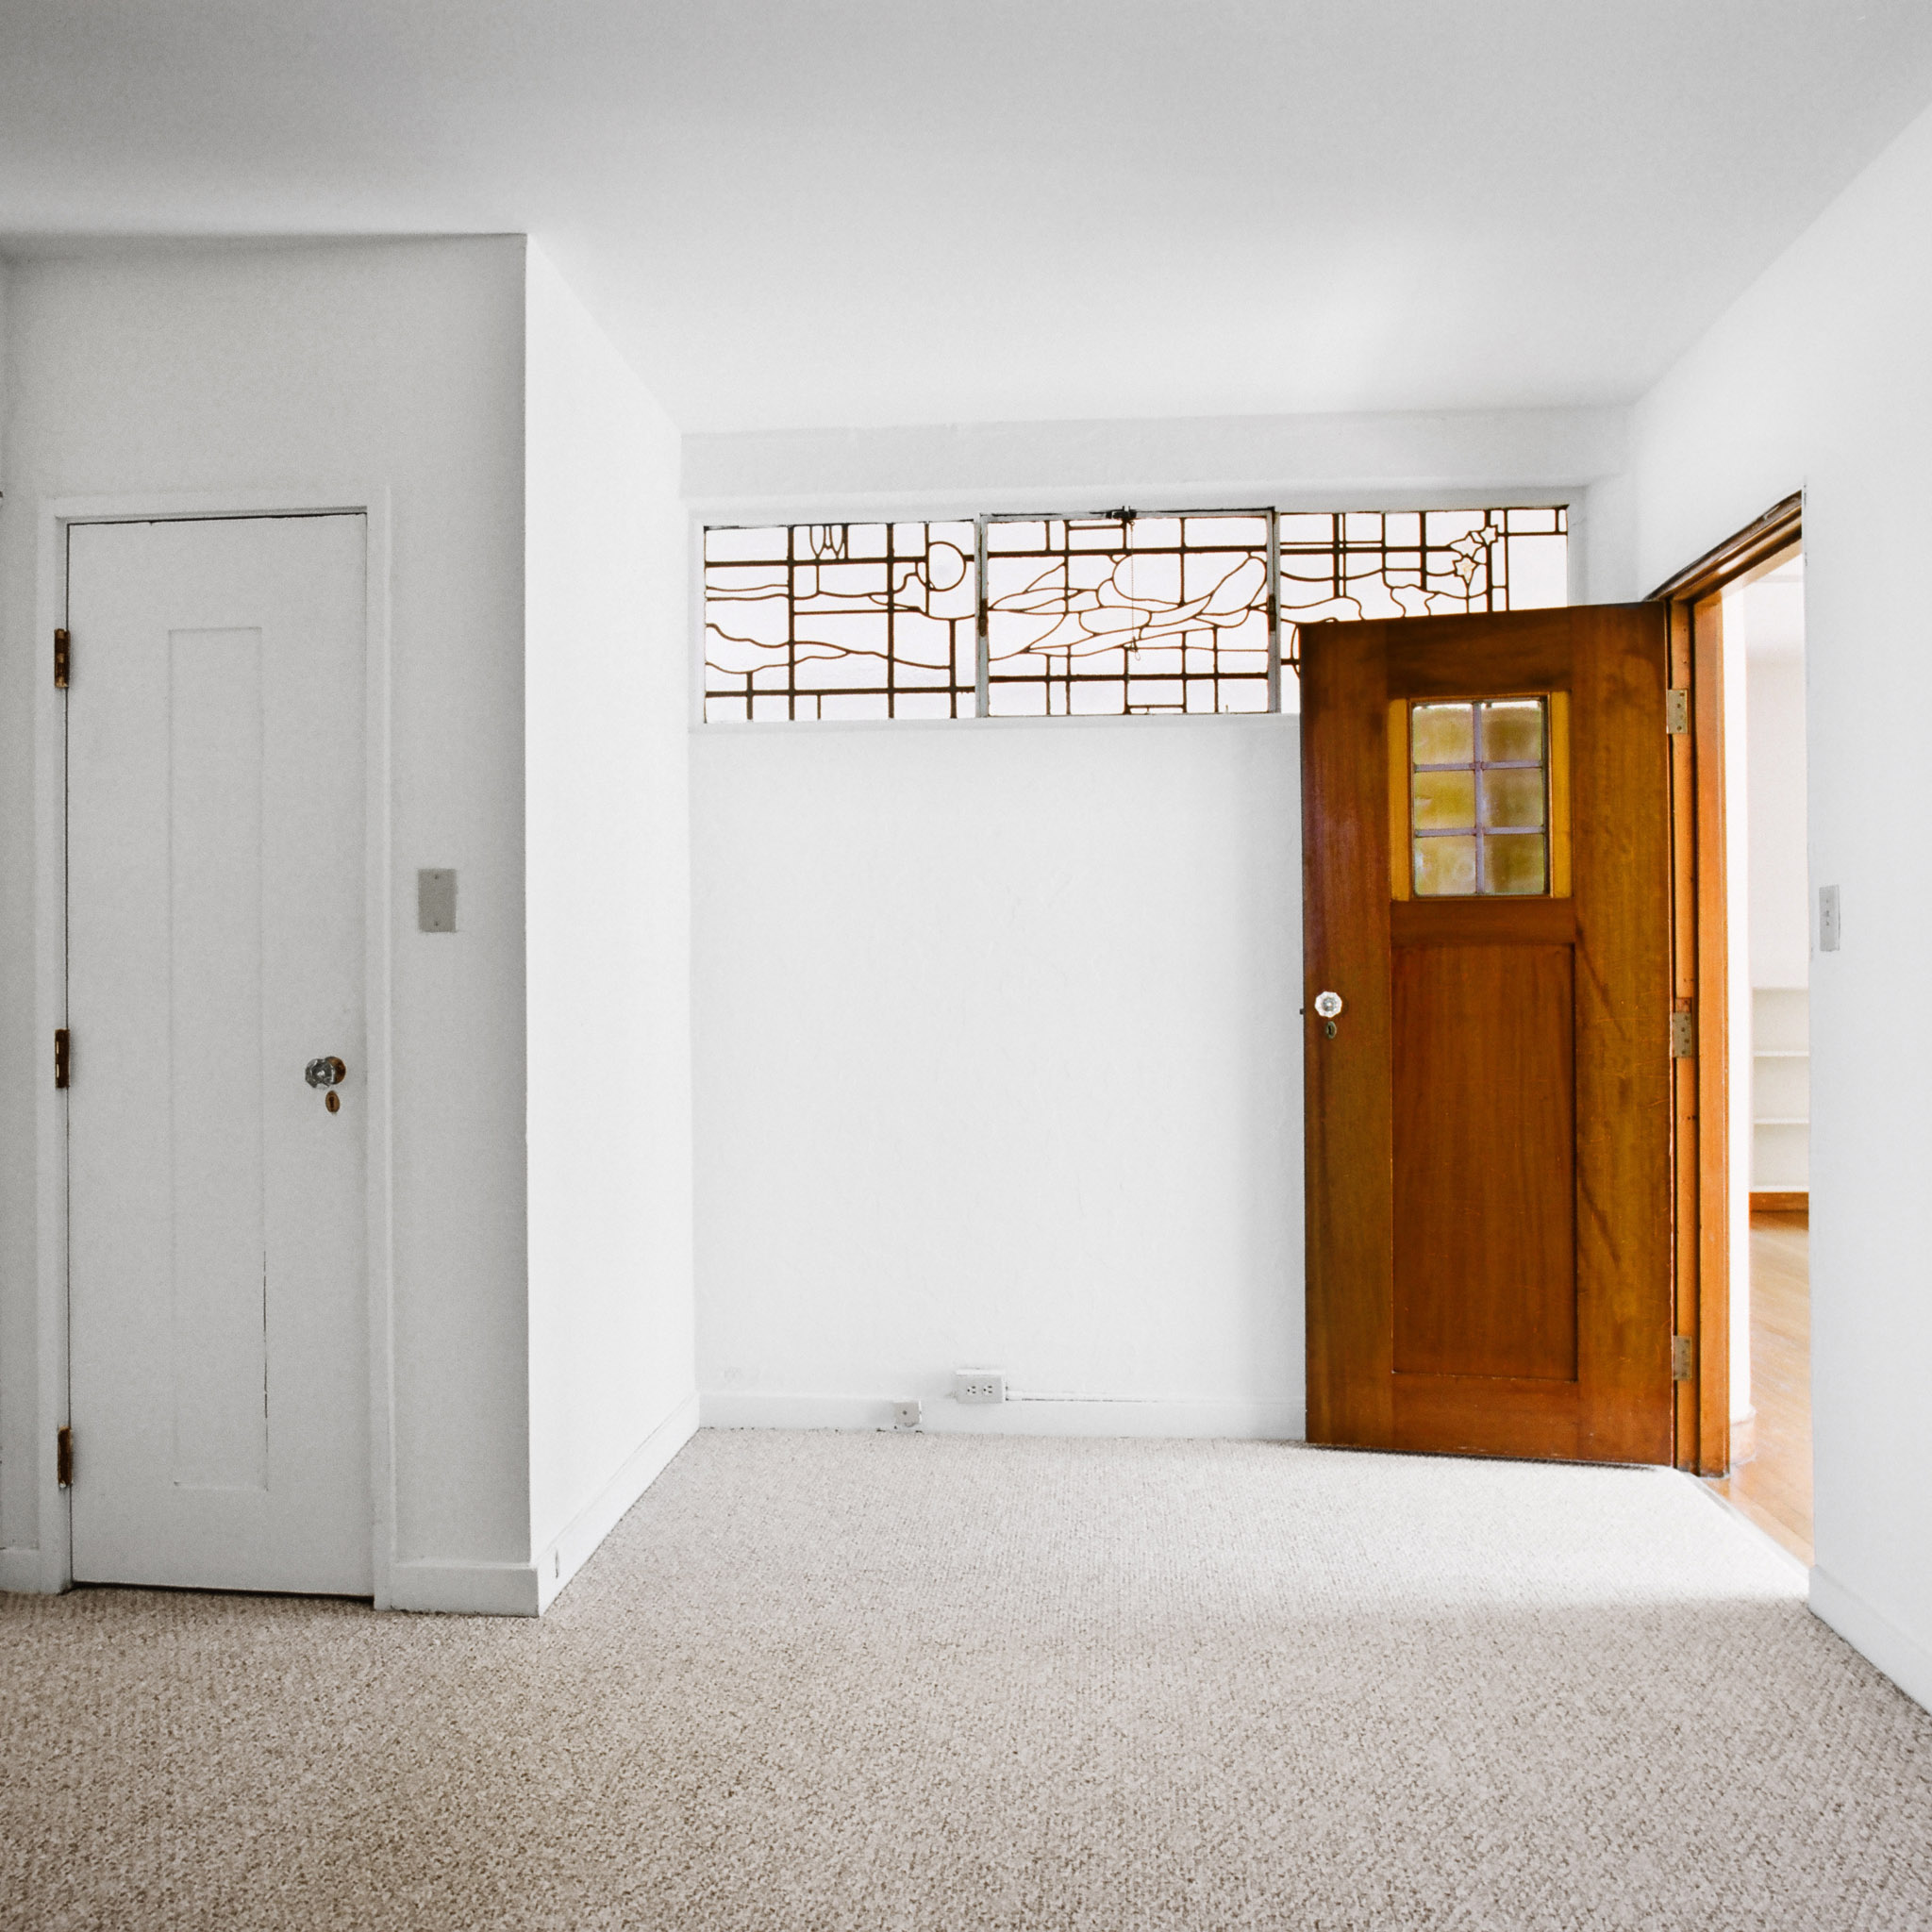 interior of 340 S. Highland Ave, Apt. 5A 6